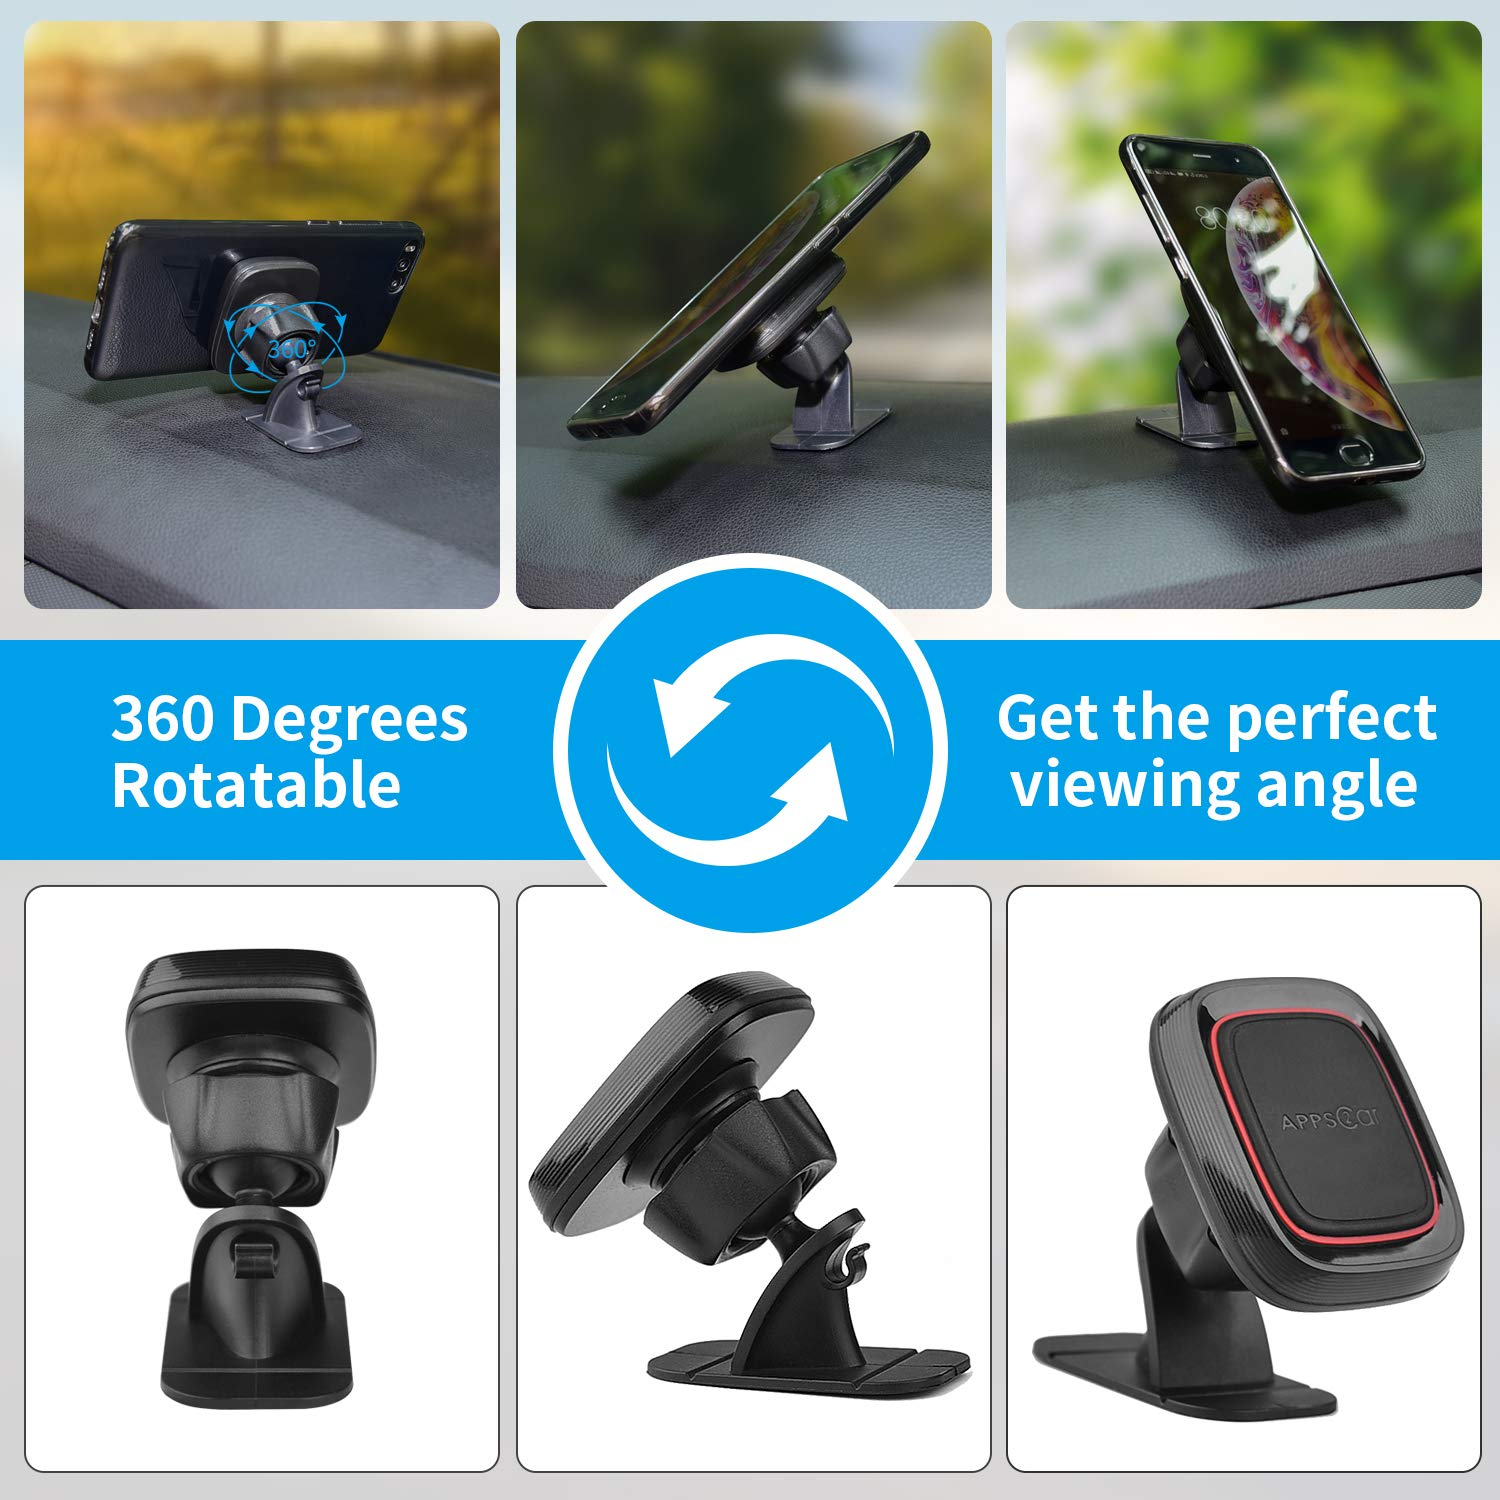 360 degree rotatable magnetic dashboard sticker car mobile phone holder muont for car gps tablet